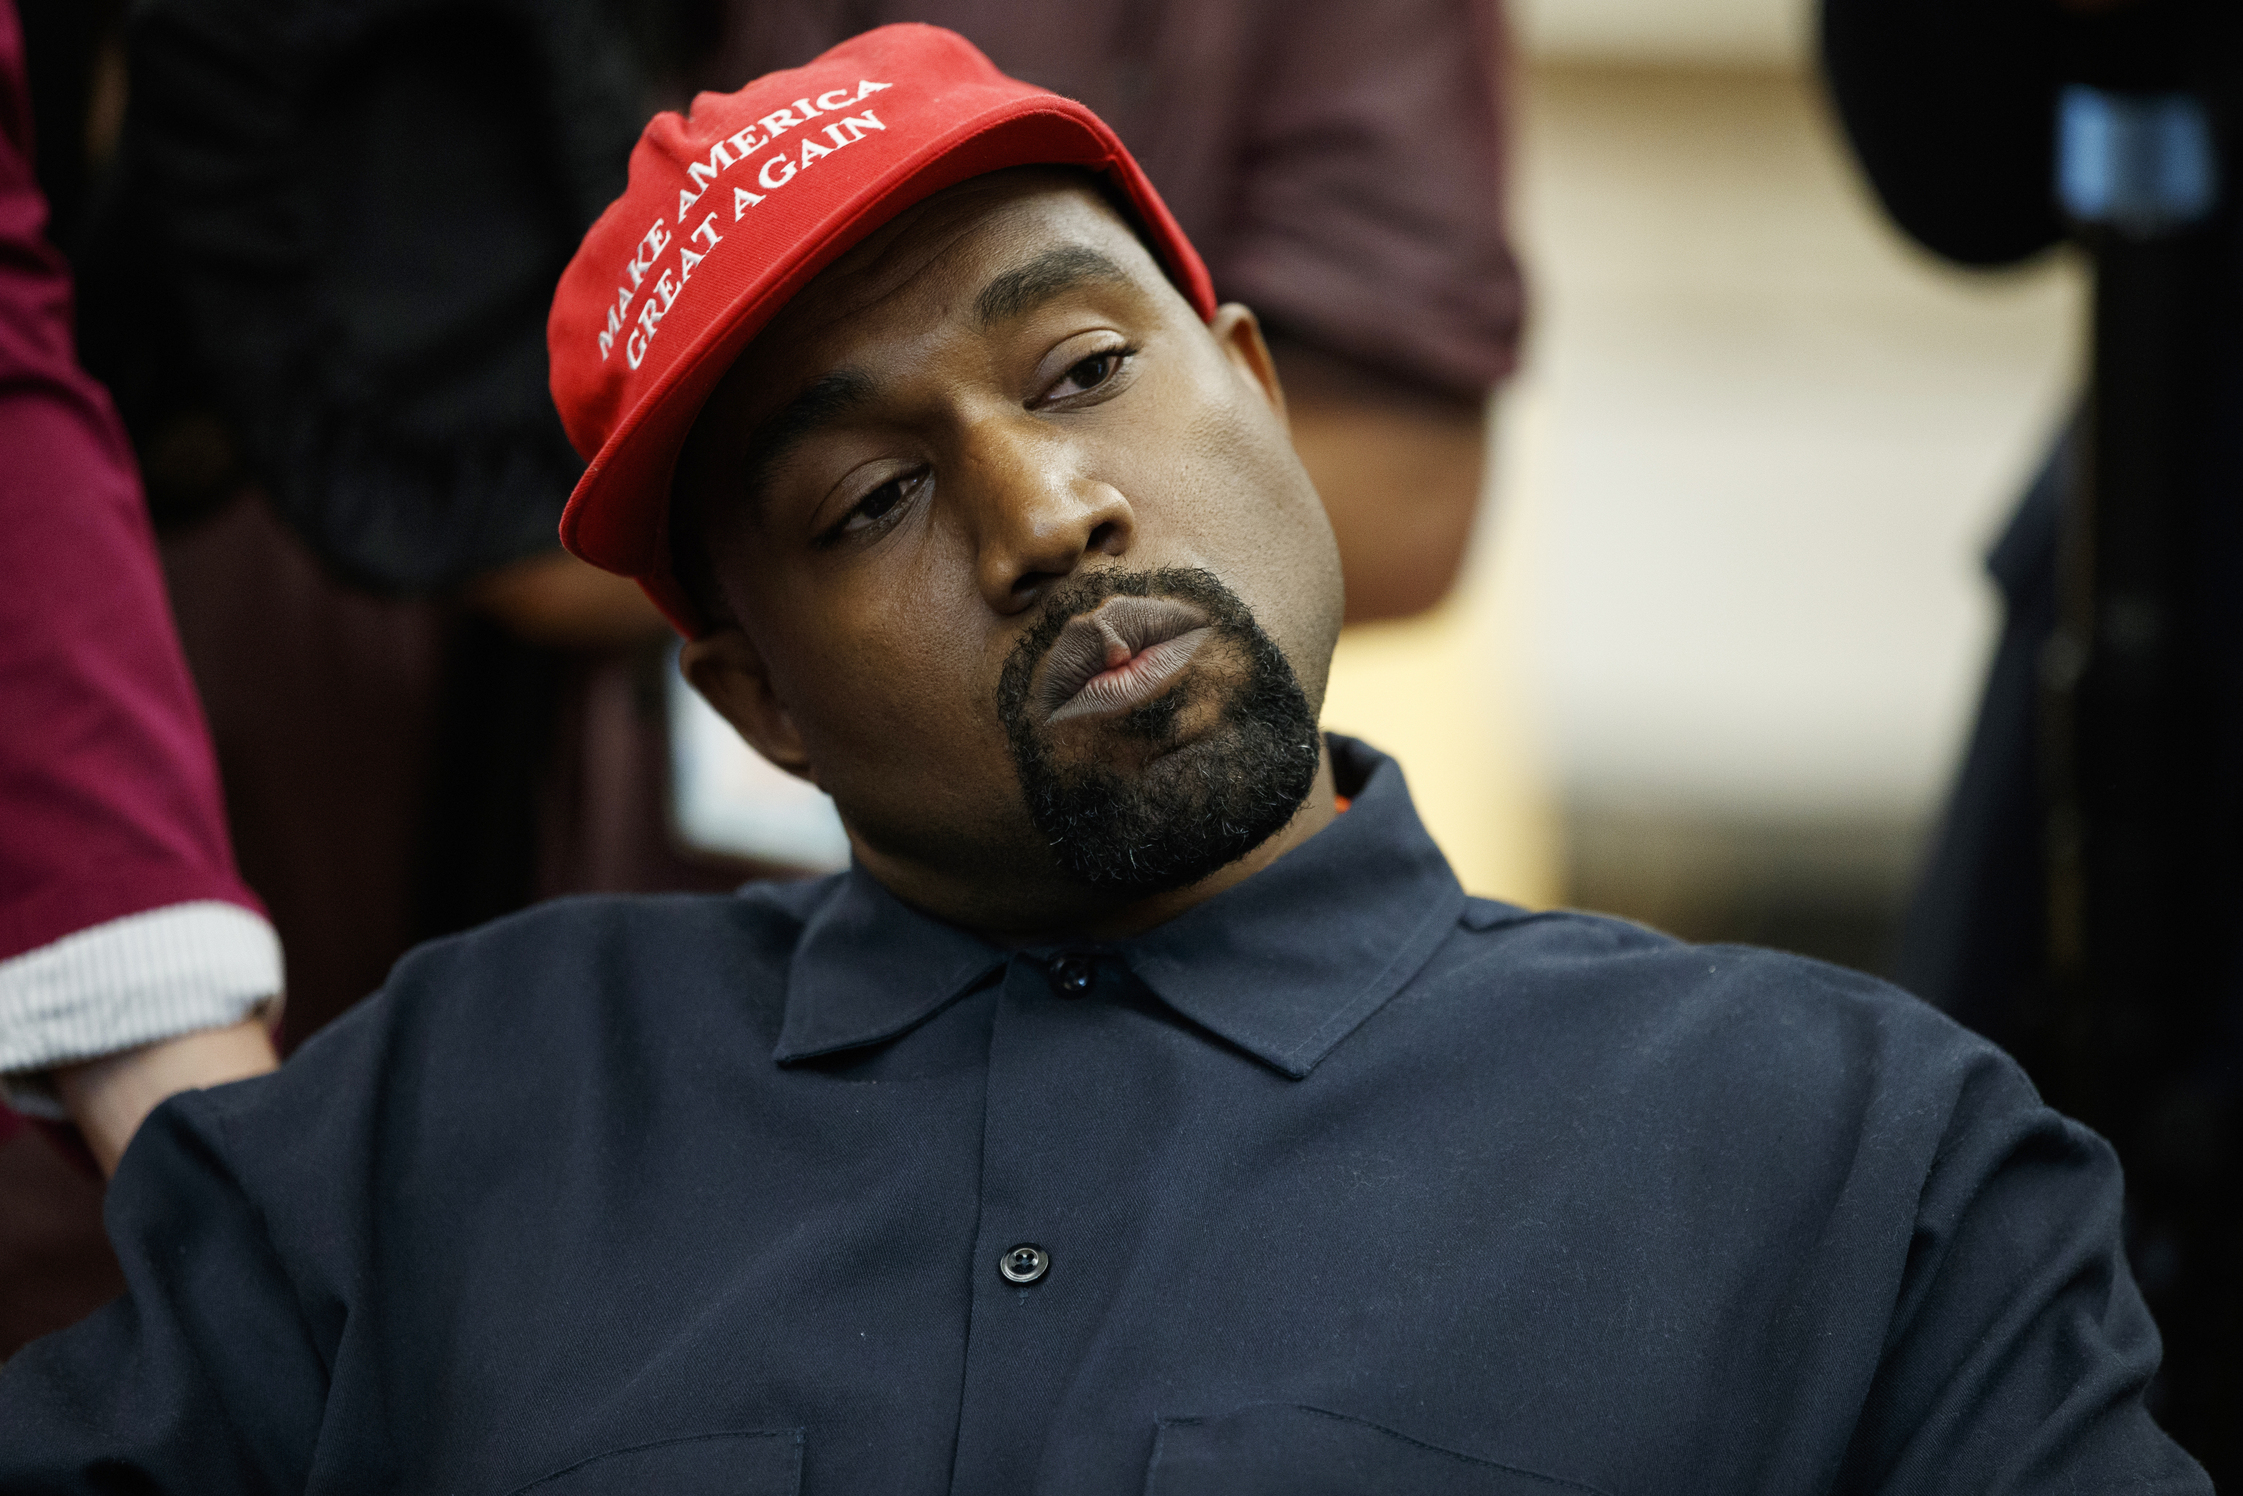 Uncle Ruckus Of The Boondocks Was Replaced With A Photo Of Kanye West In A Maga Hat Cnn